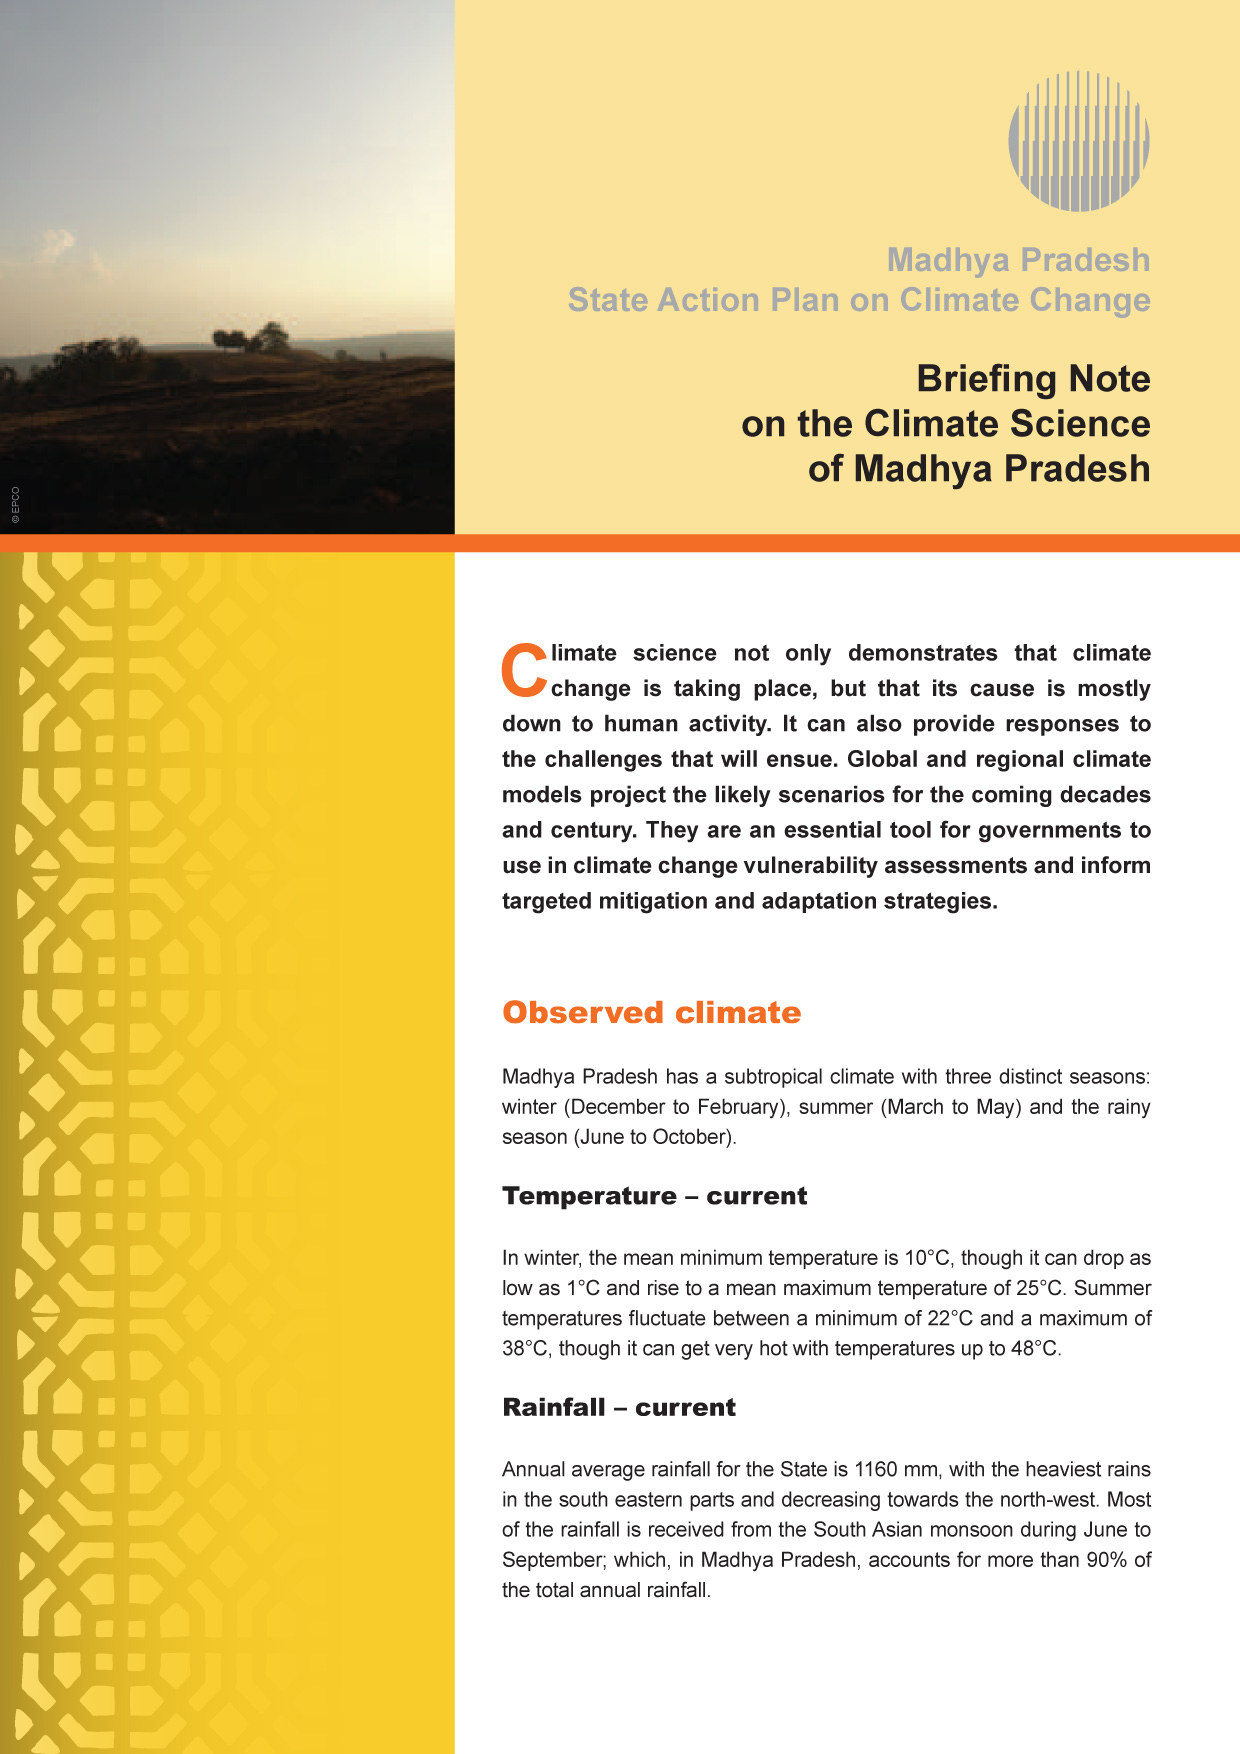 Briefing Note on the Climate Science of Madhya Pradesh